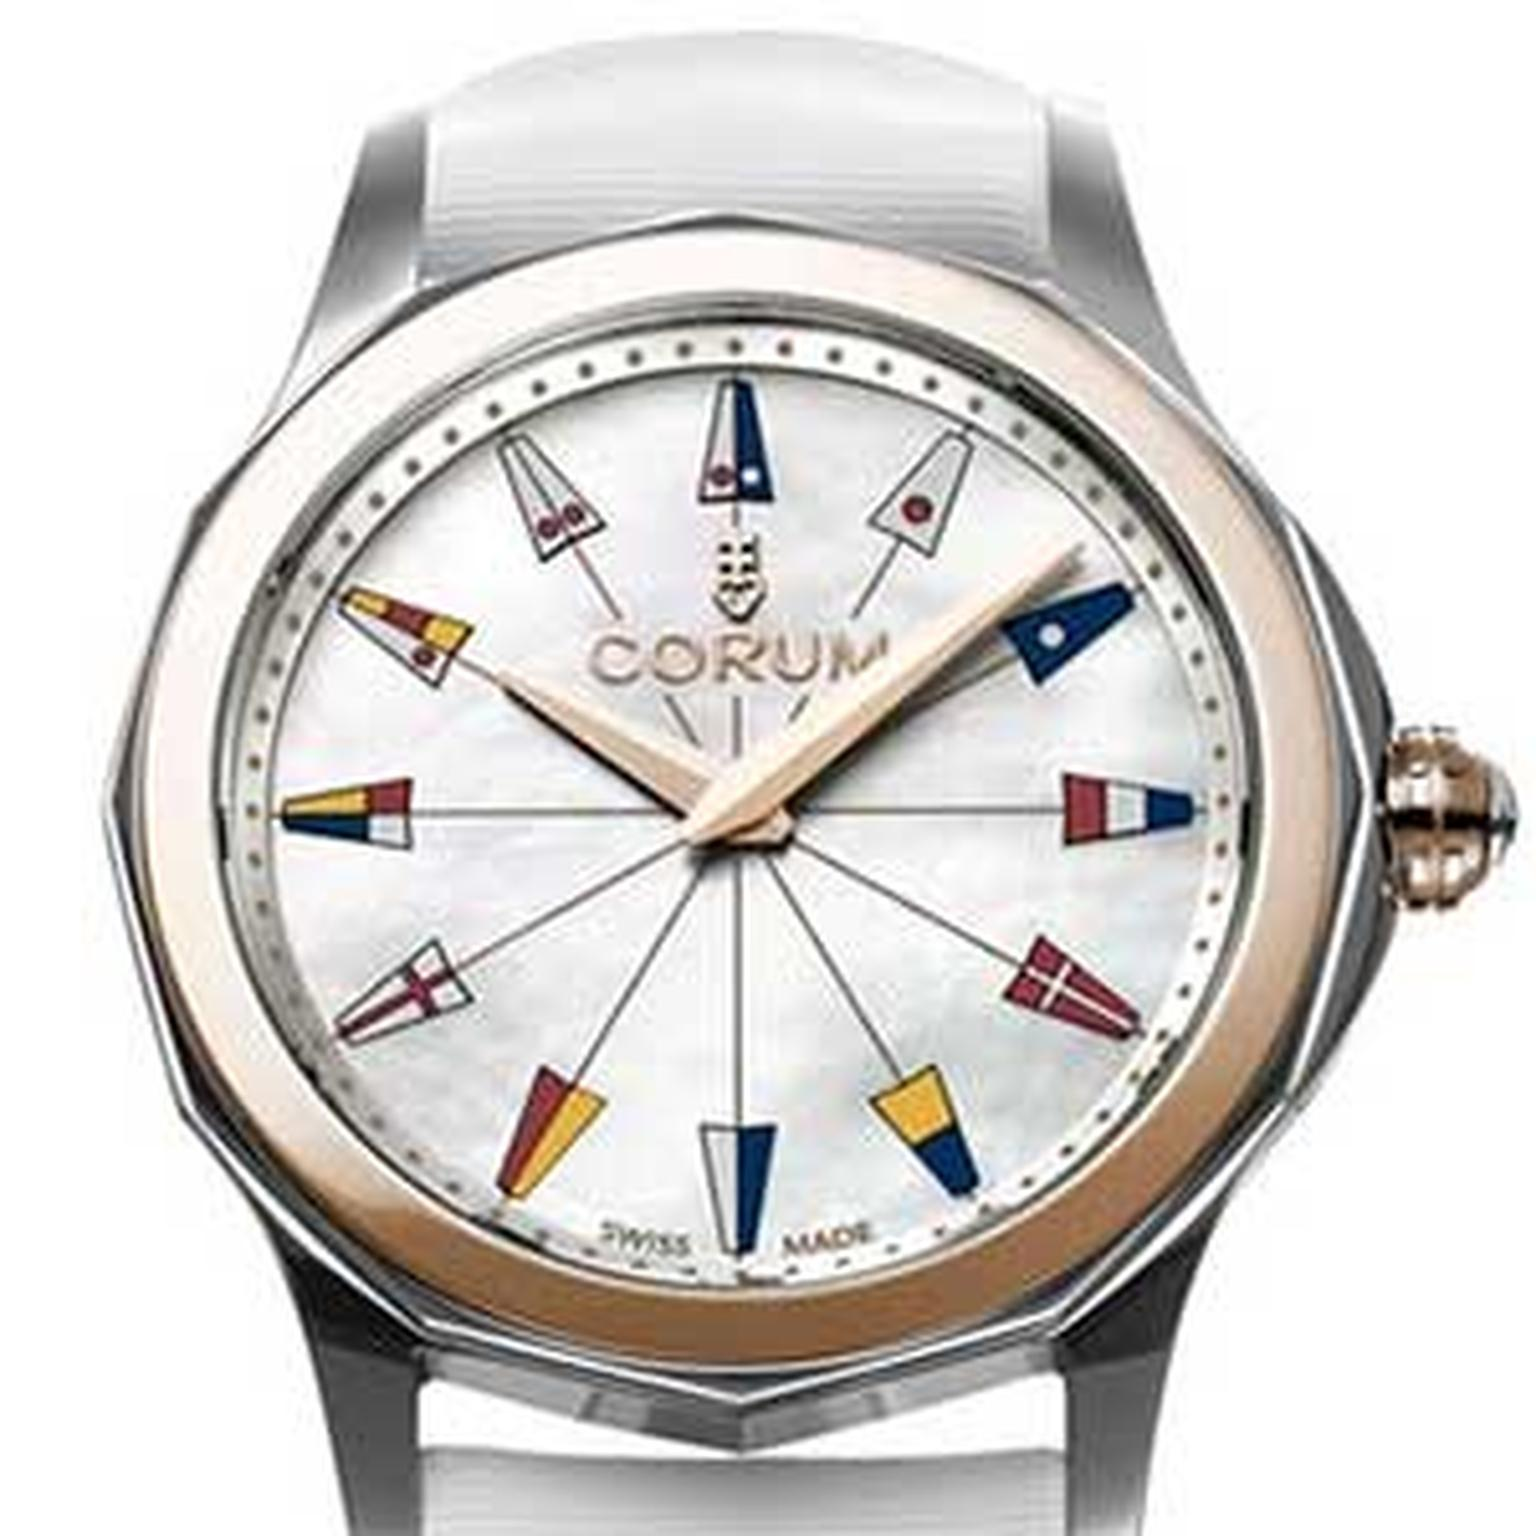 Corum -Admirals -Cup -ladies -watch